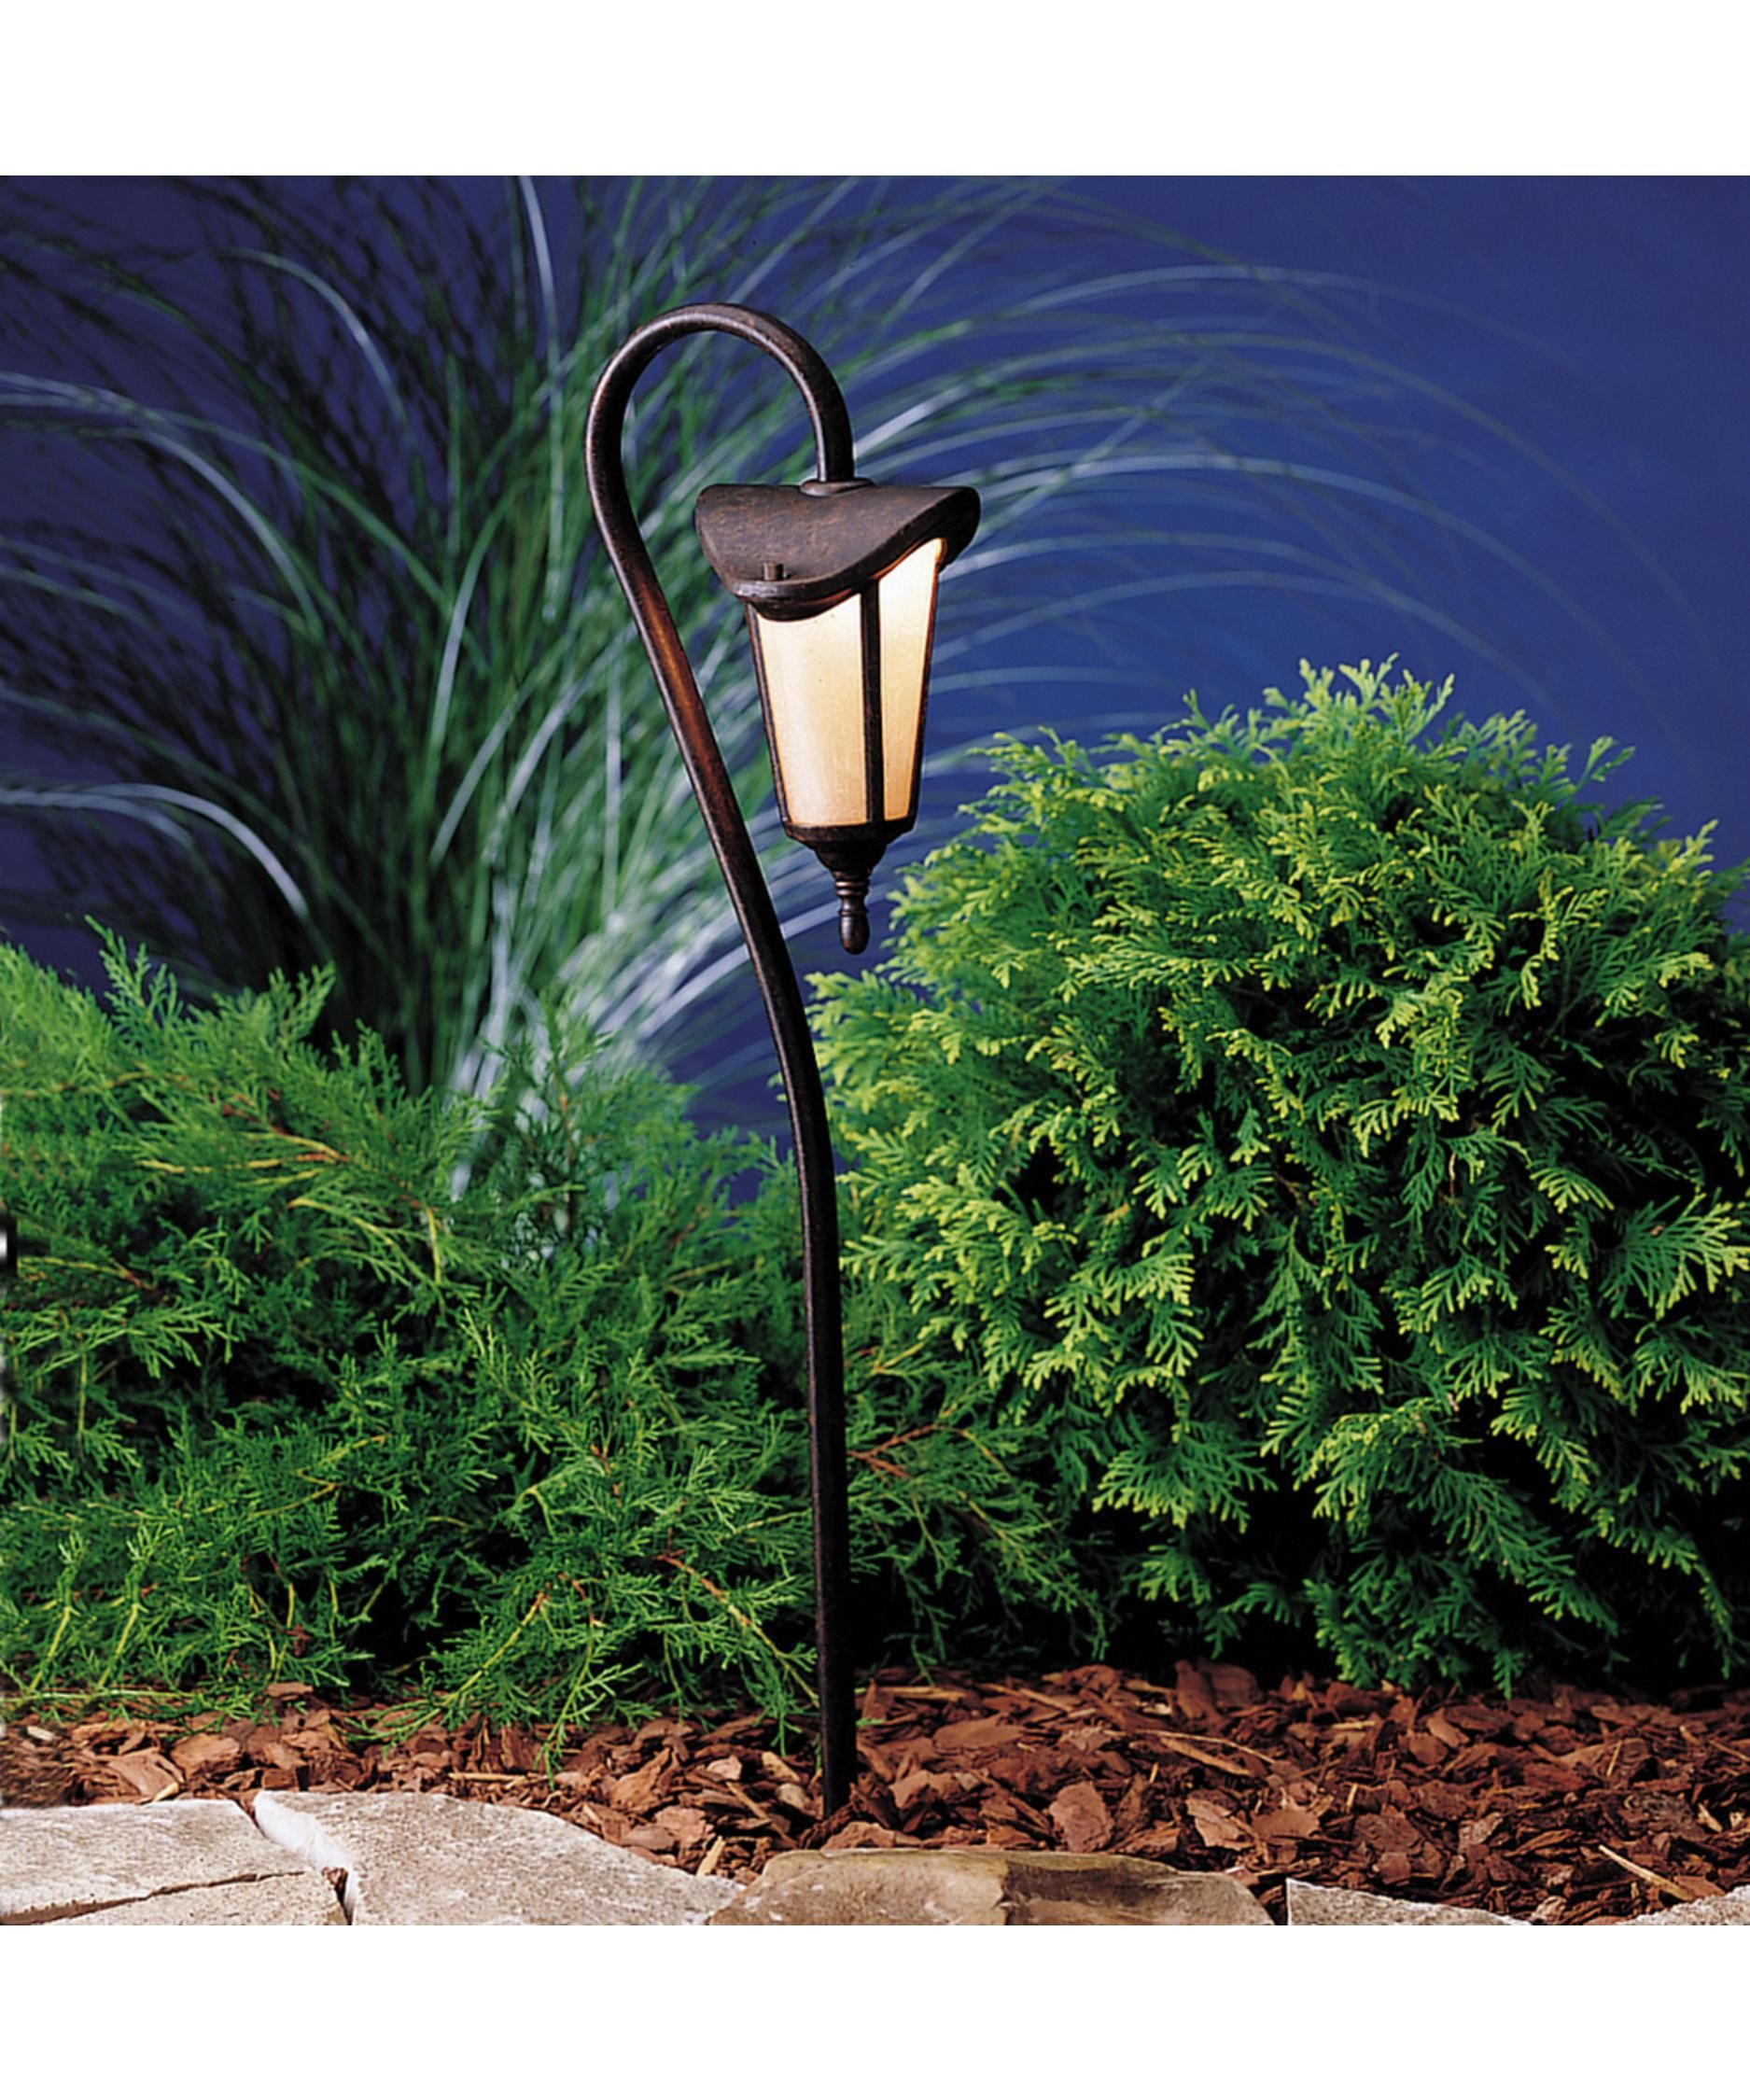 Lafayette 27 Inch Decorative Pathway Light Capitol Lighting Outdoor Lighting Landscape Landscape Lighting Ideas Walkways Outdoor Path Lighting